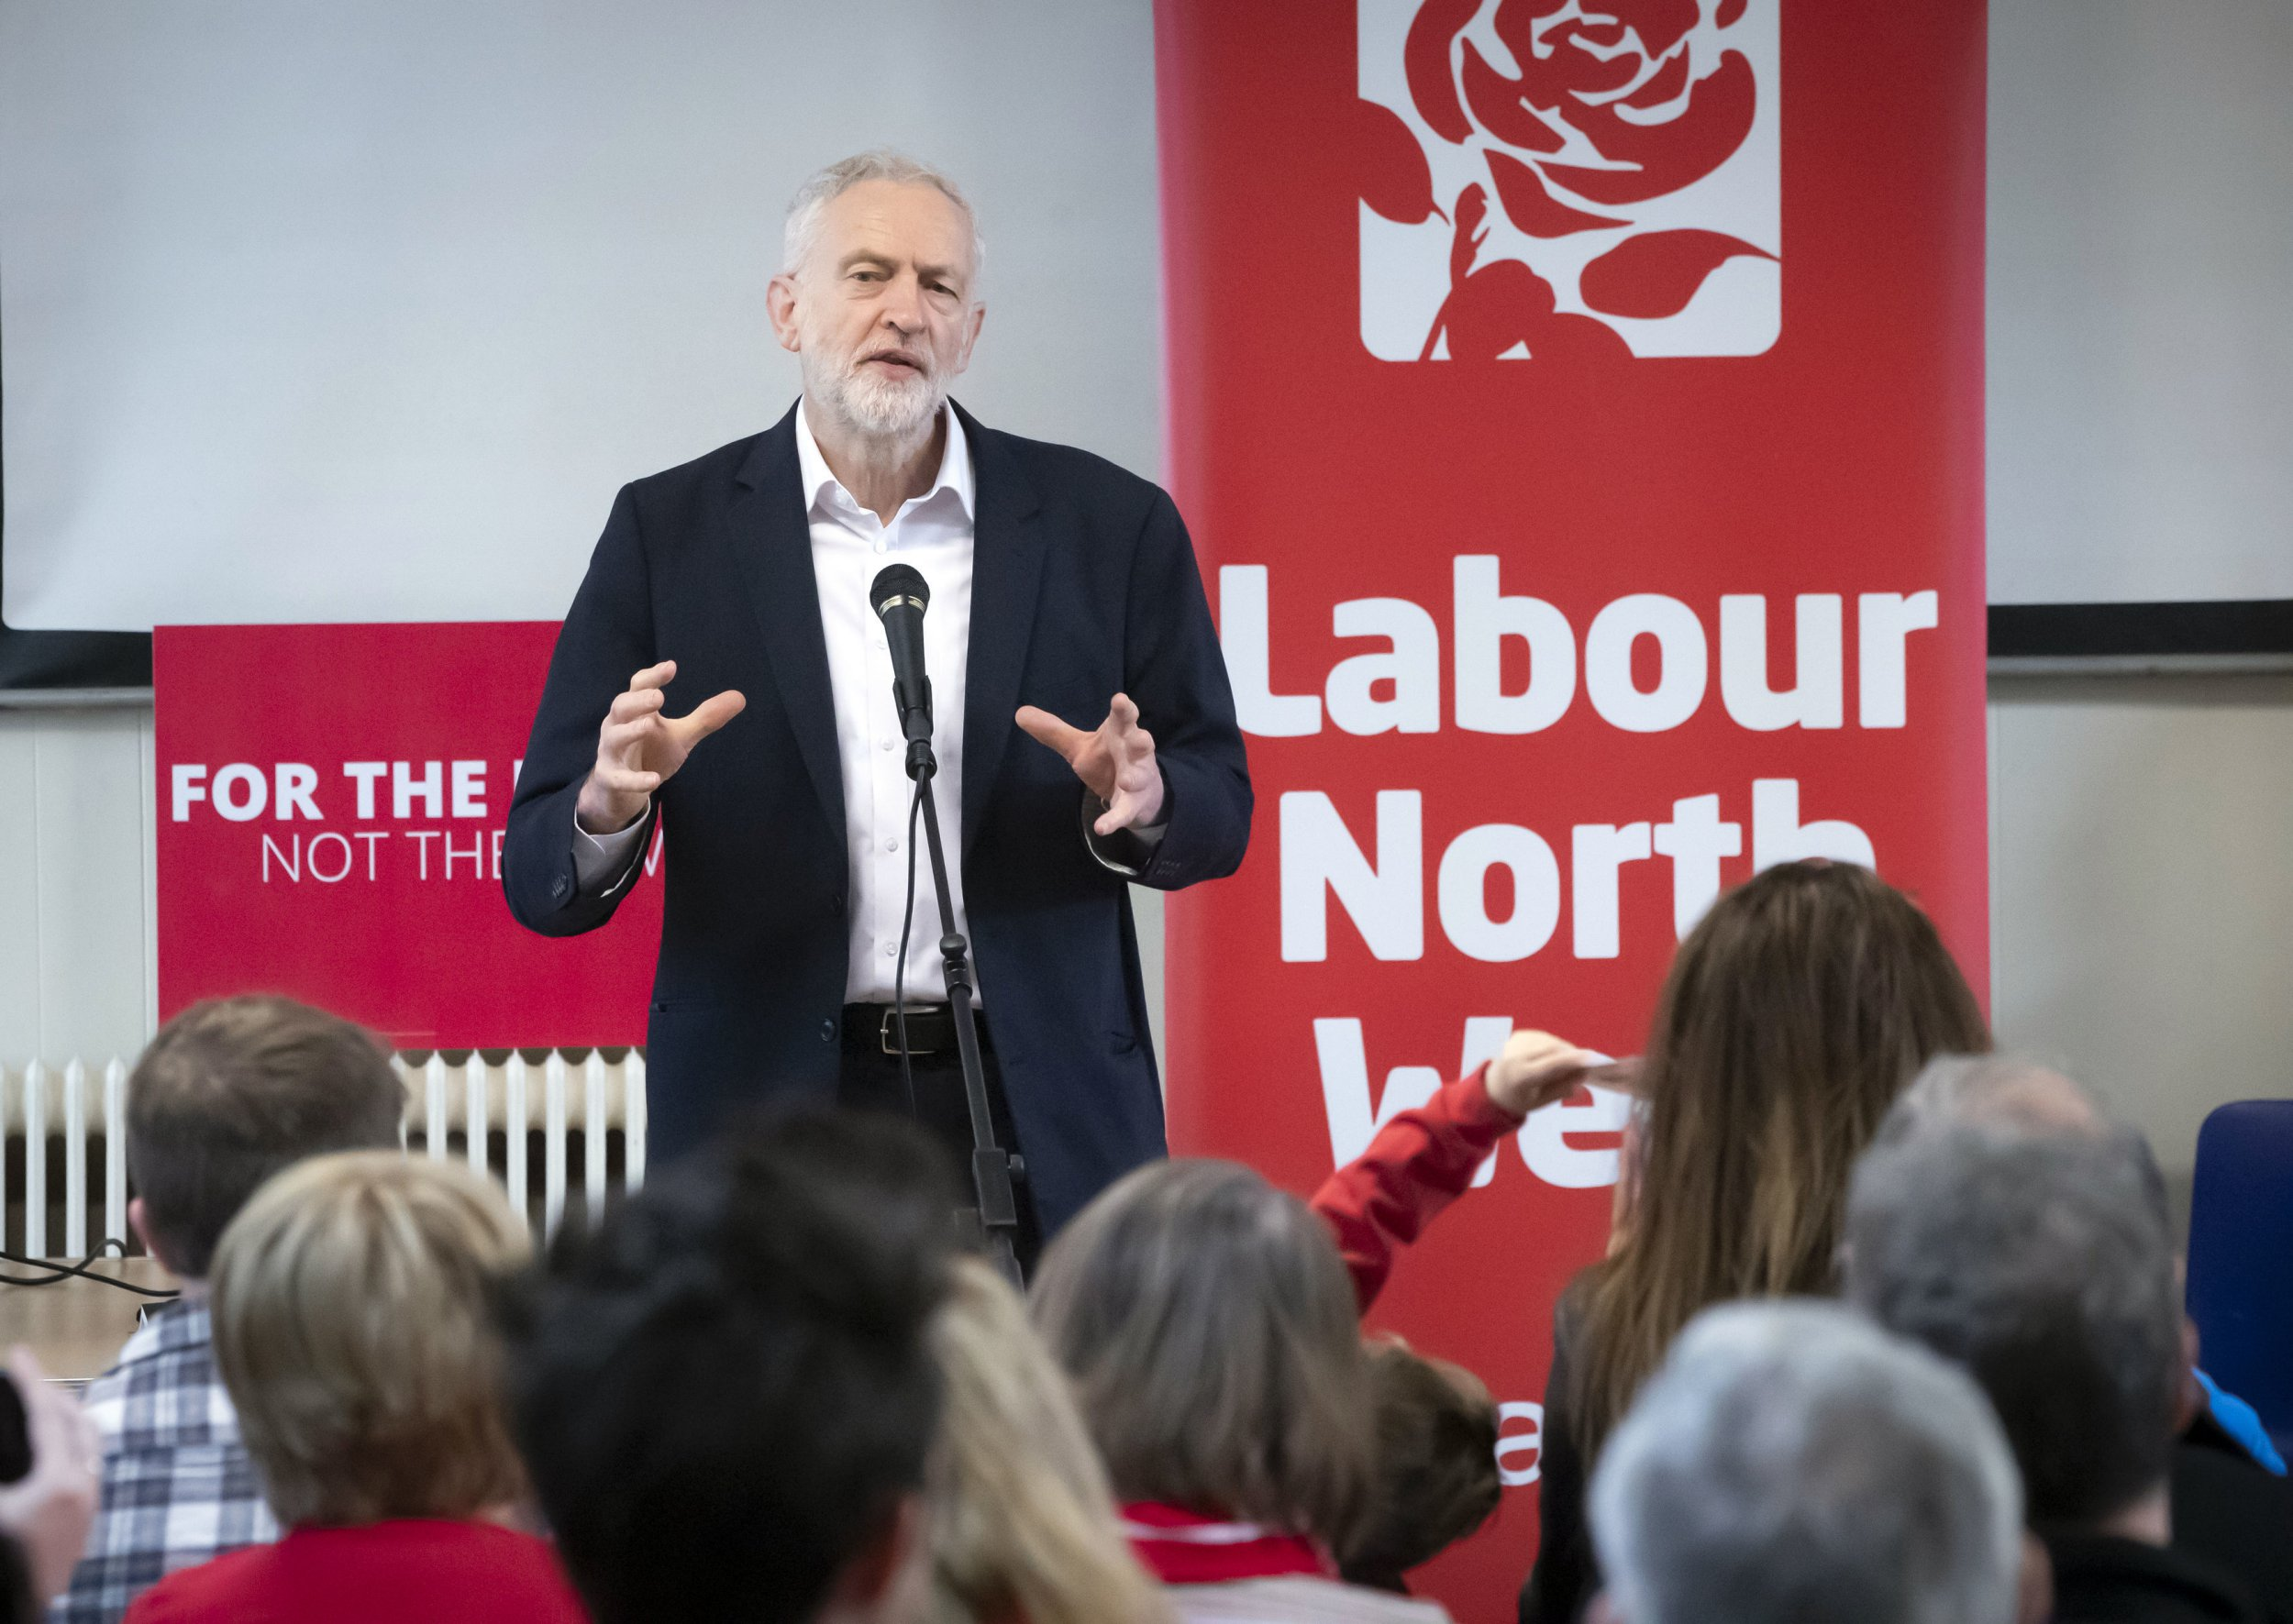 Labour leader Jeremy Corbyn during a members meeting in Leyland, Lancashire while on the local election campaign trail. PRESS ASSOCIATION Photo. Picture date: Tuesday April 16, 2019. Photo credit should read: Danny Lawson/PA Wire